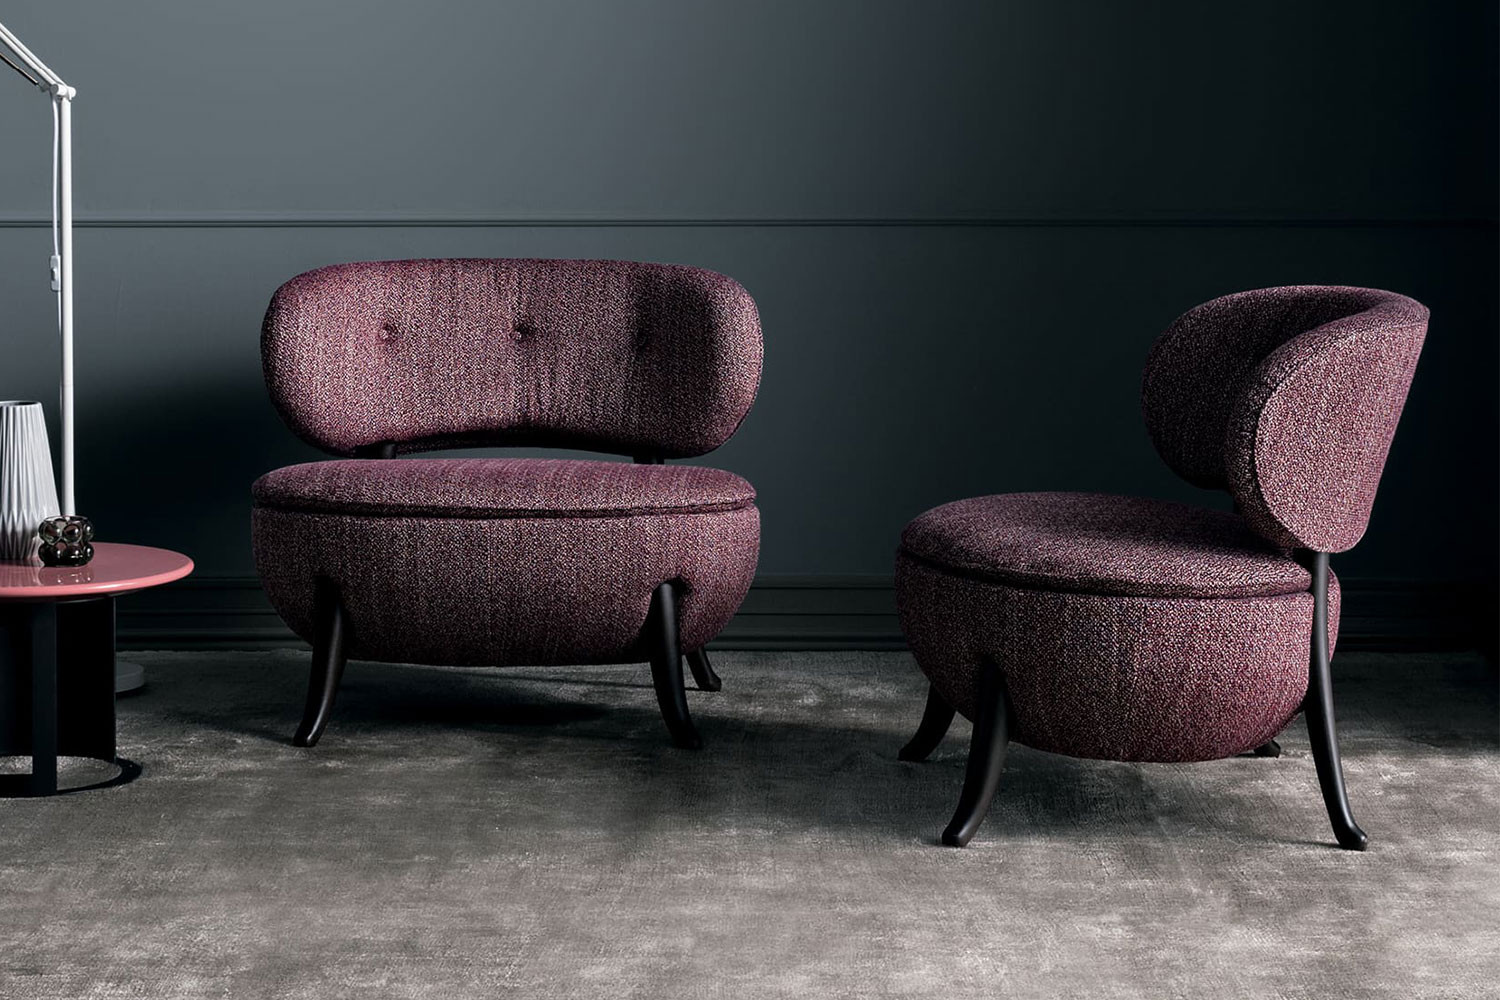 Romantic mid century inspired armless slipper chair with buttoned back